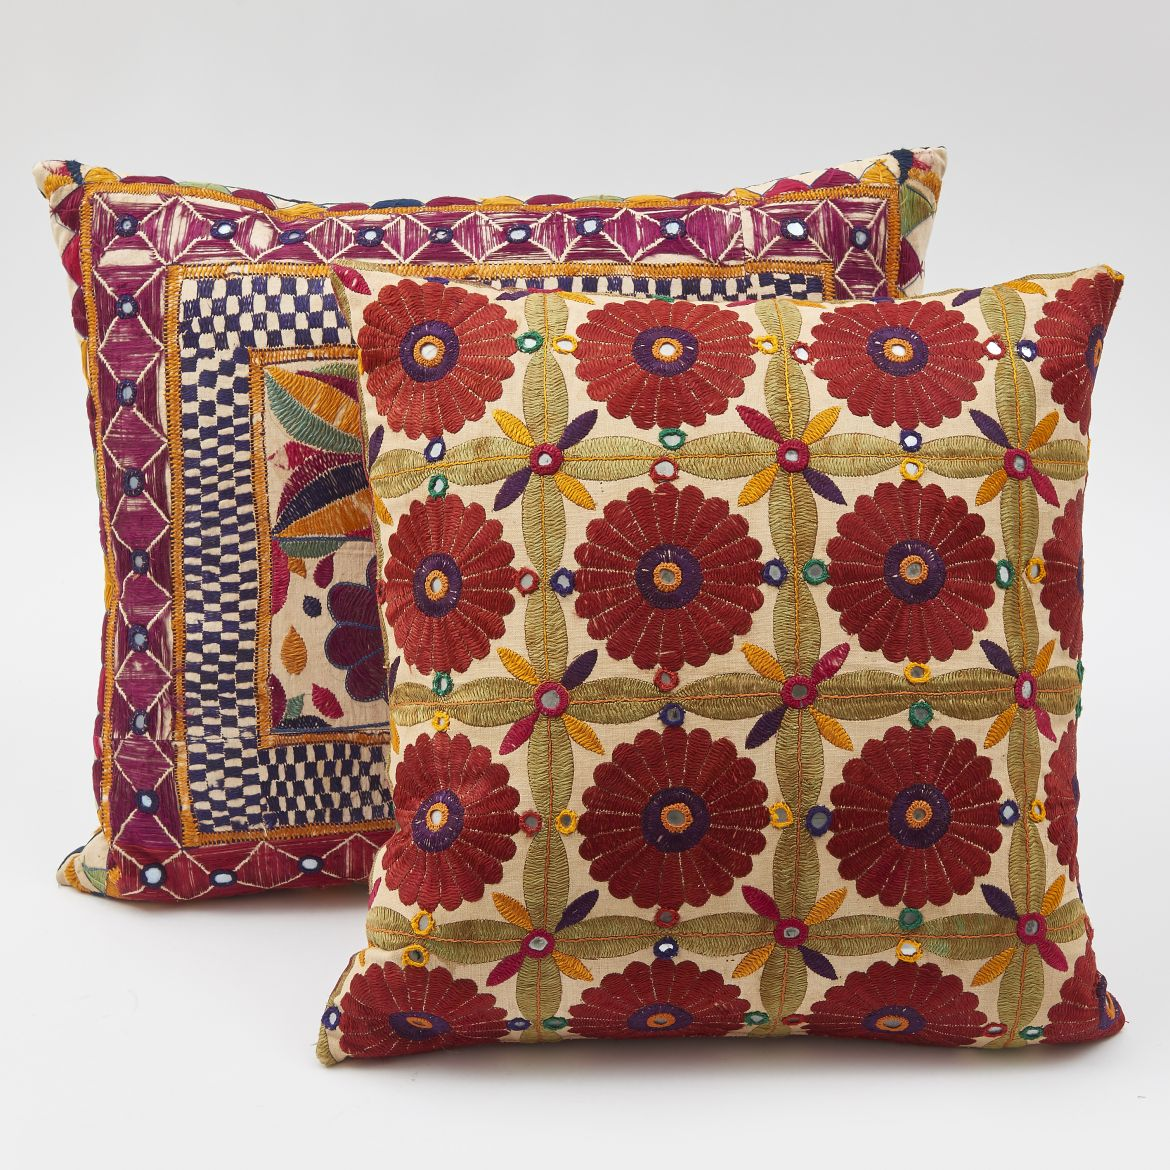 Ceremonial Fabric Cushions